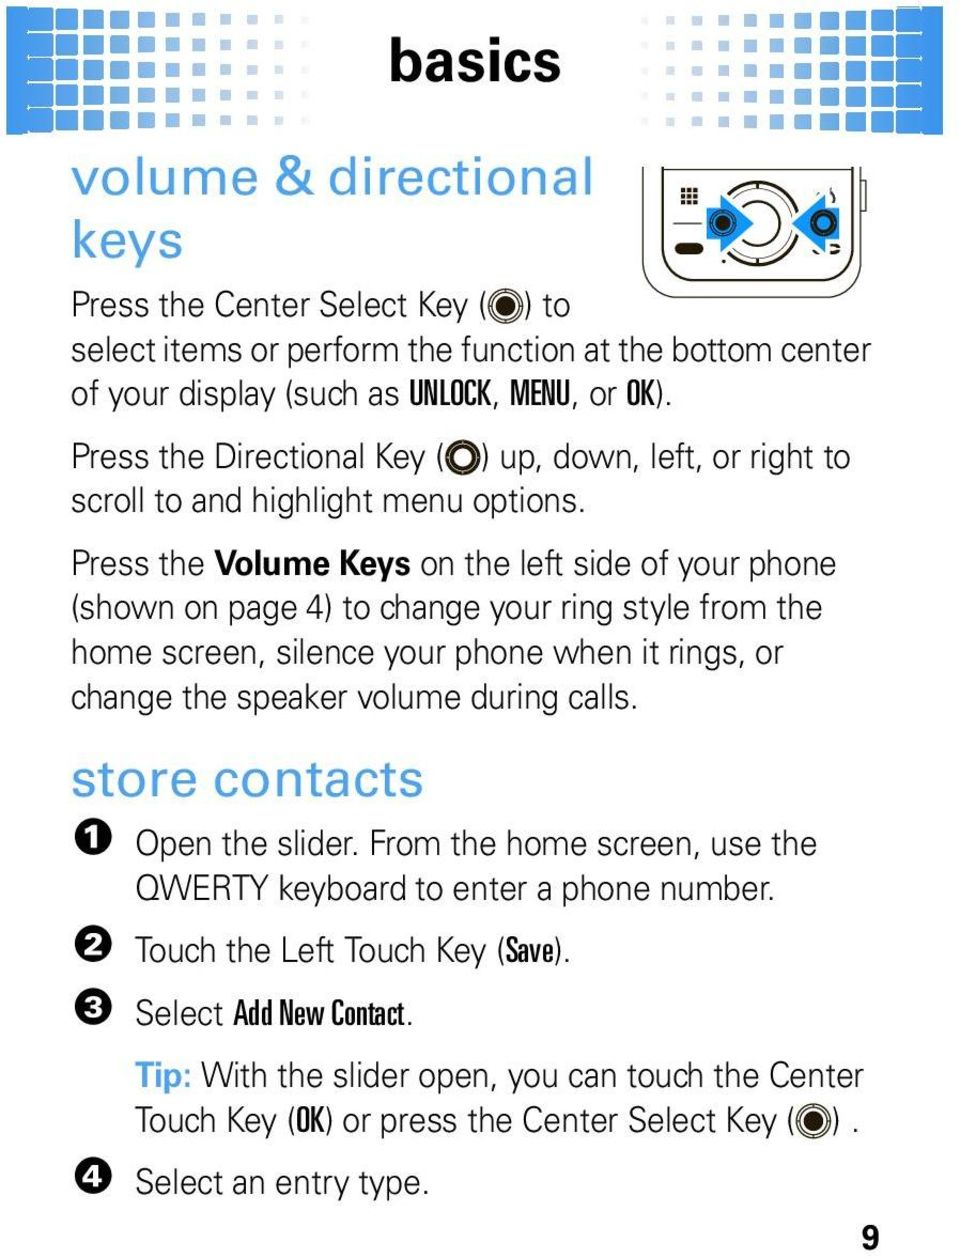 Press the Volume Keys on the left side of your phone (shown on page 4) to change your ring style from the home screen, silence your phone when it rings, or change the speaker volume during